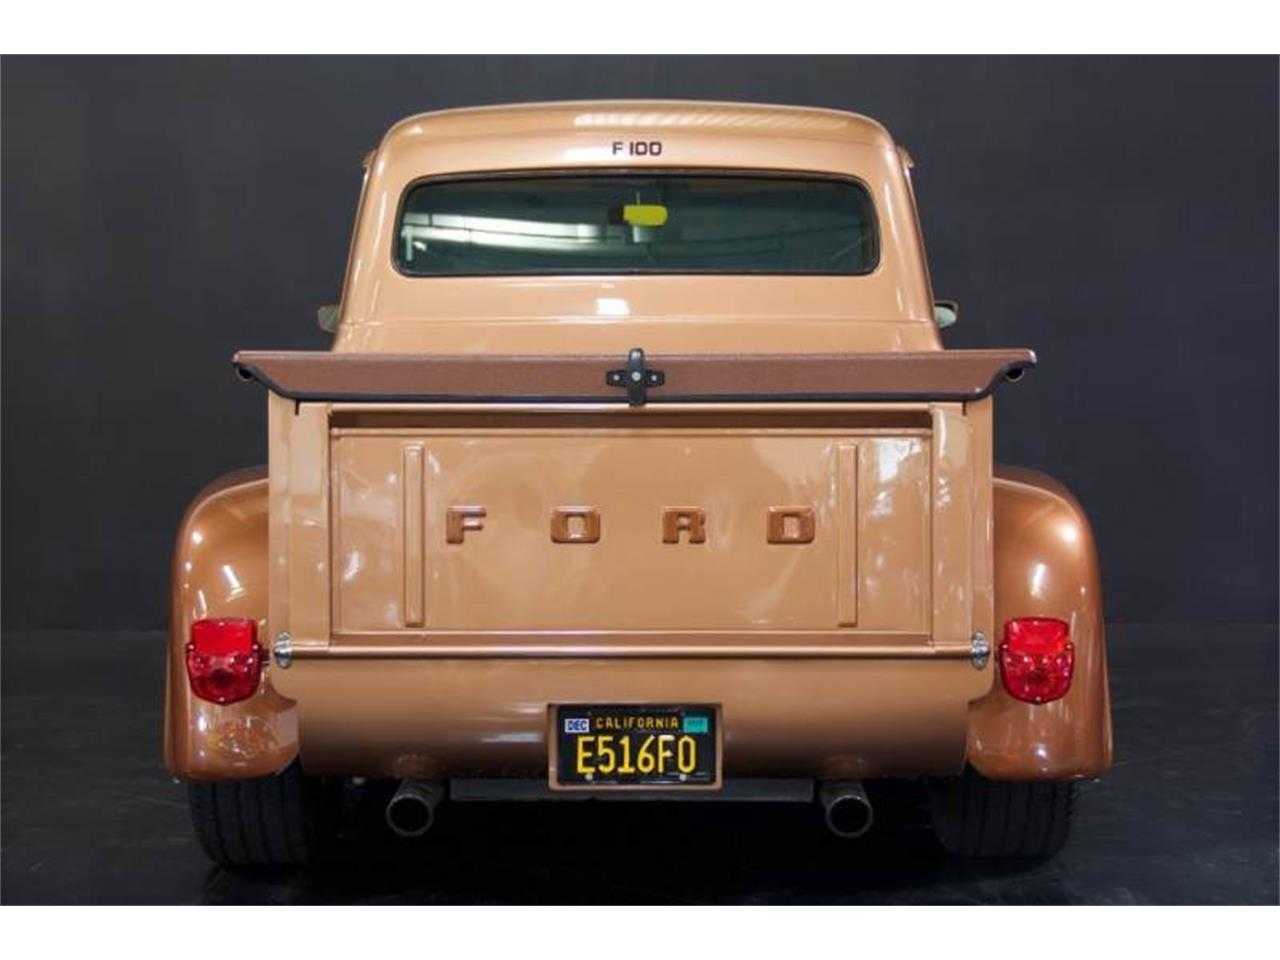 1955 Ford F100 For Sale Cc 1023502 Side Large Picture Of Classic 55 Located In Milpitas California Auction Vehicle Lxqm